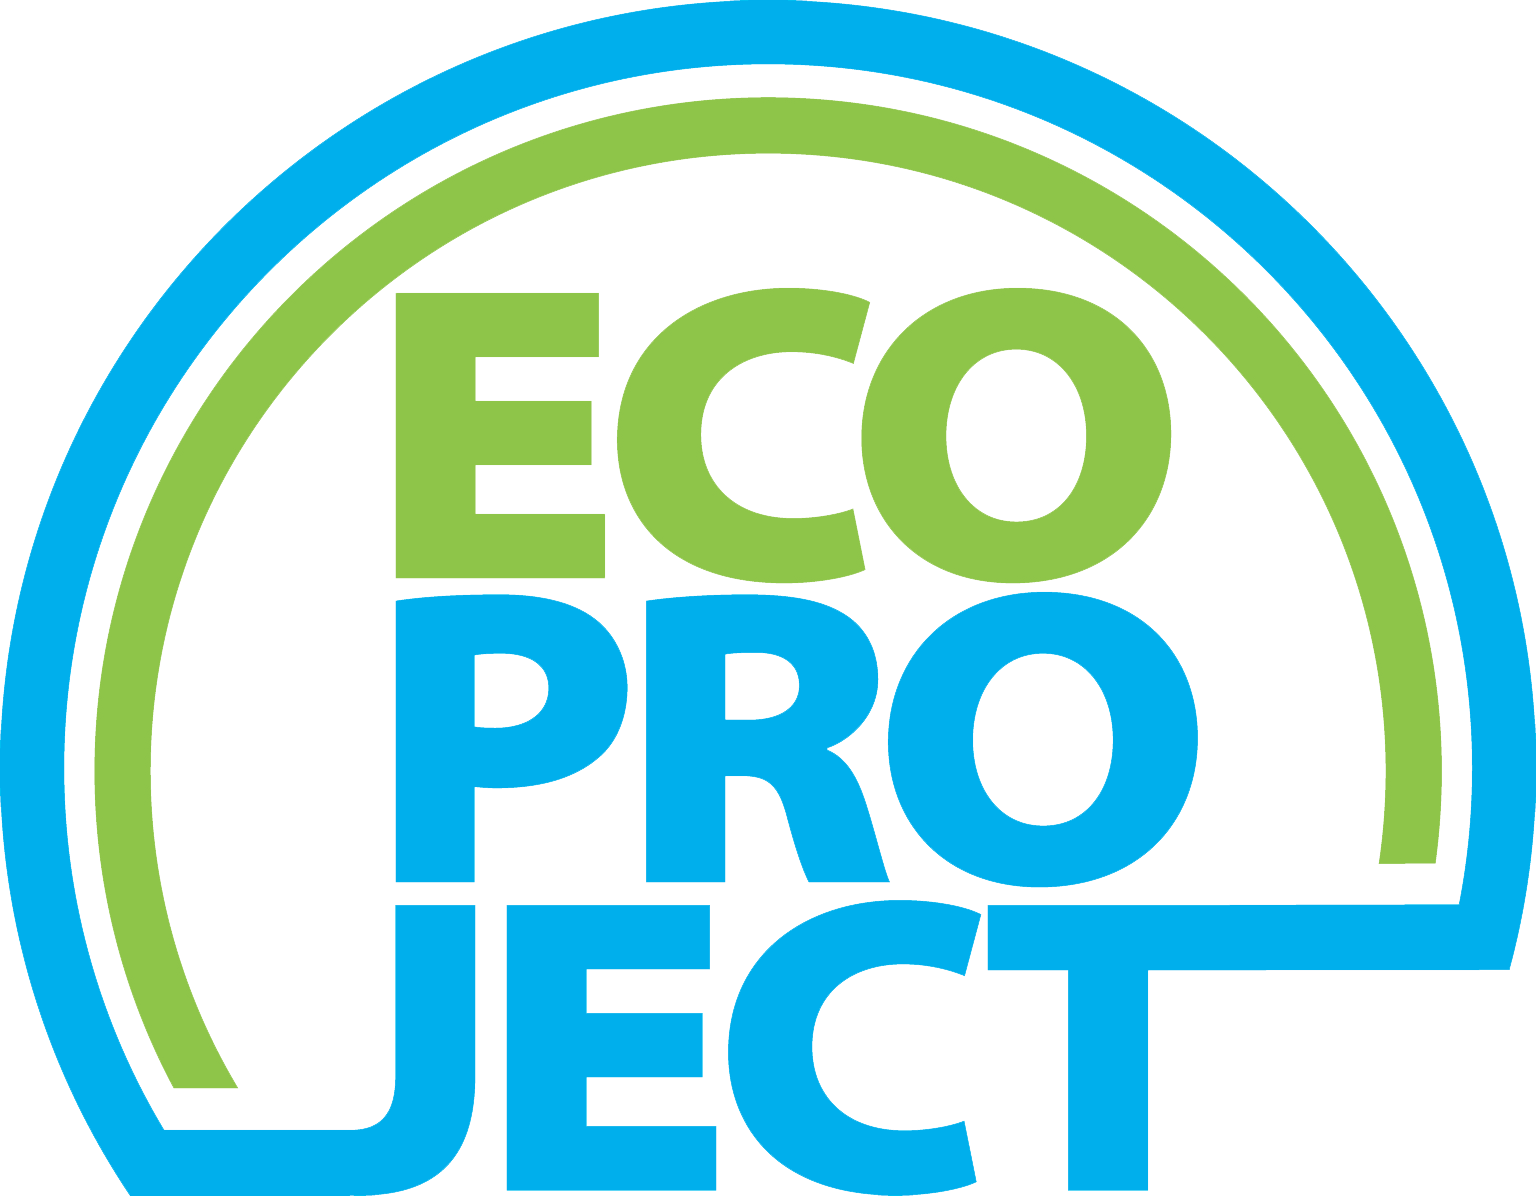 Ecoproject